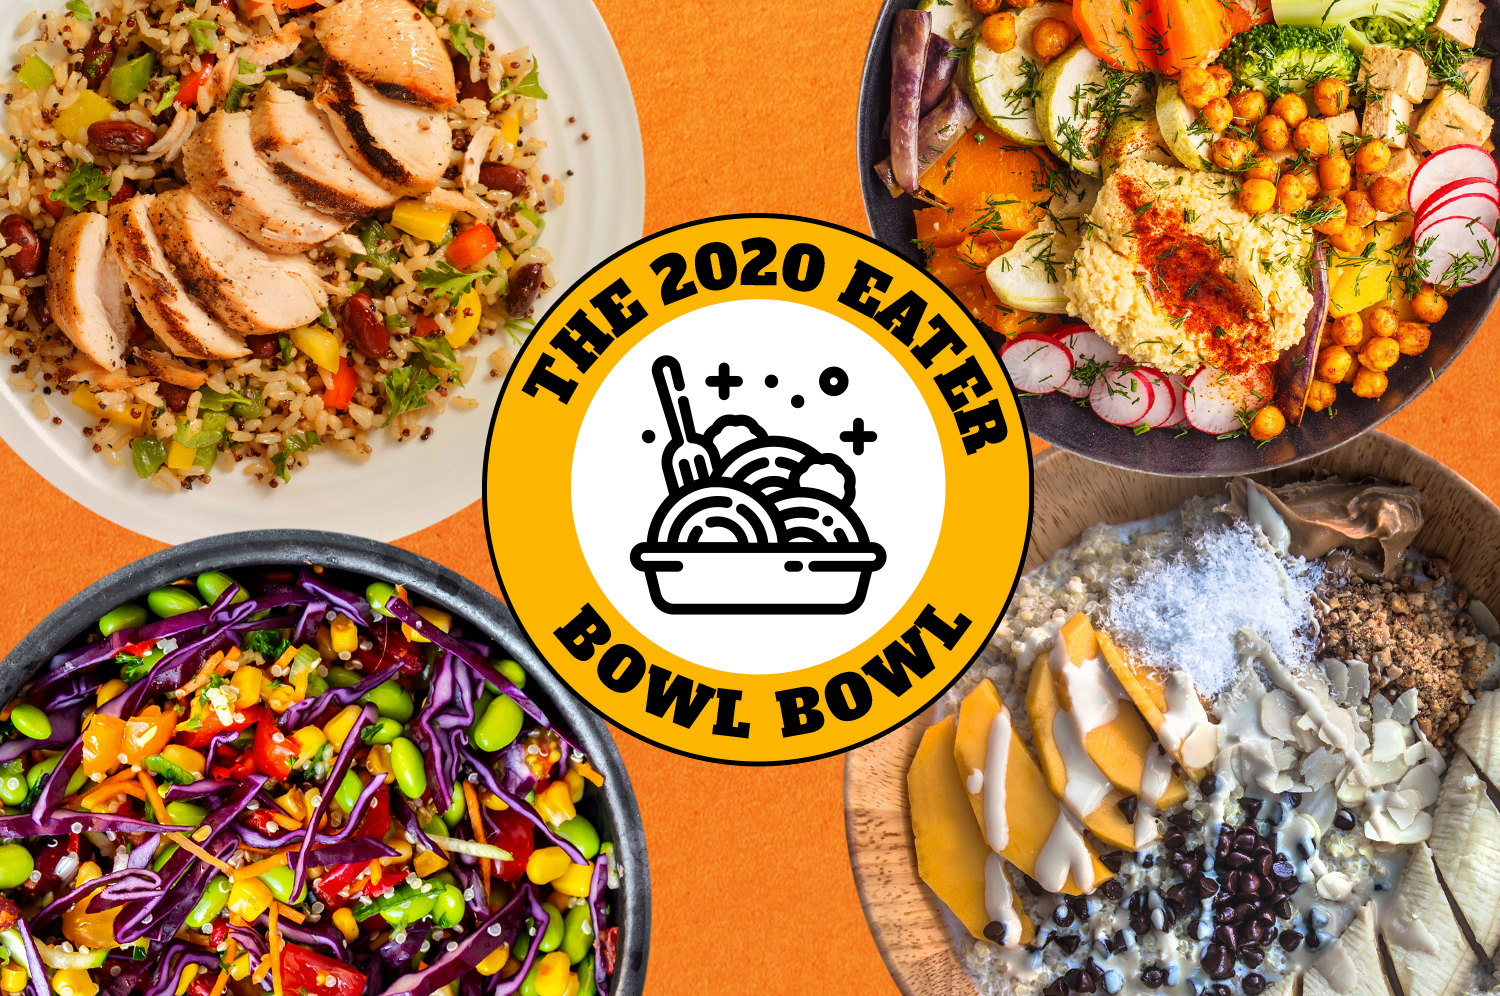 "From above: a chicken and rice bowl, a Mediterranean bowl with chickpeas and hummus, a smoothie bowl with mango slices and coconut, and a colorful veggie bowl with beans and purple cabbage, circled around a badge reading ""The 2020 Eater Bowl Bowl"" with a black and white bowl drawing in the center."